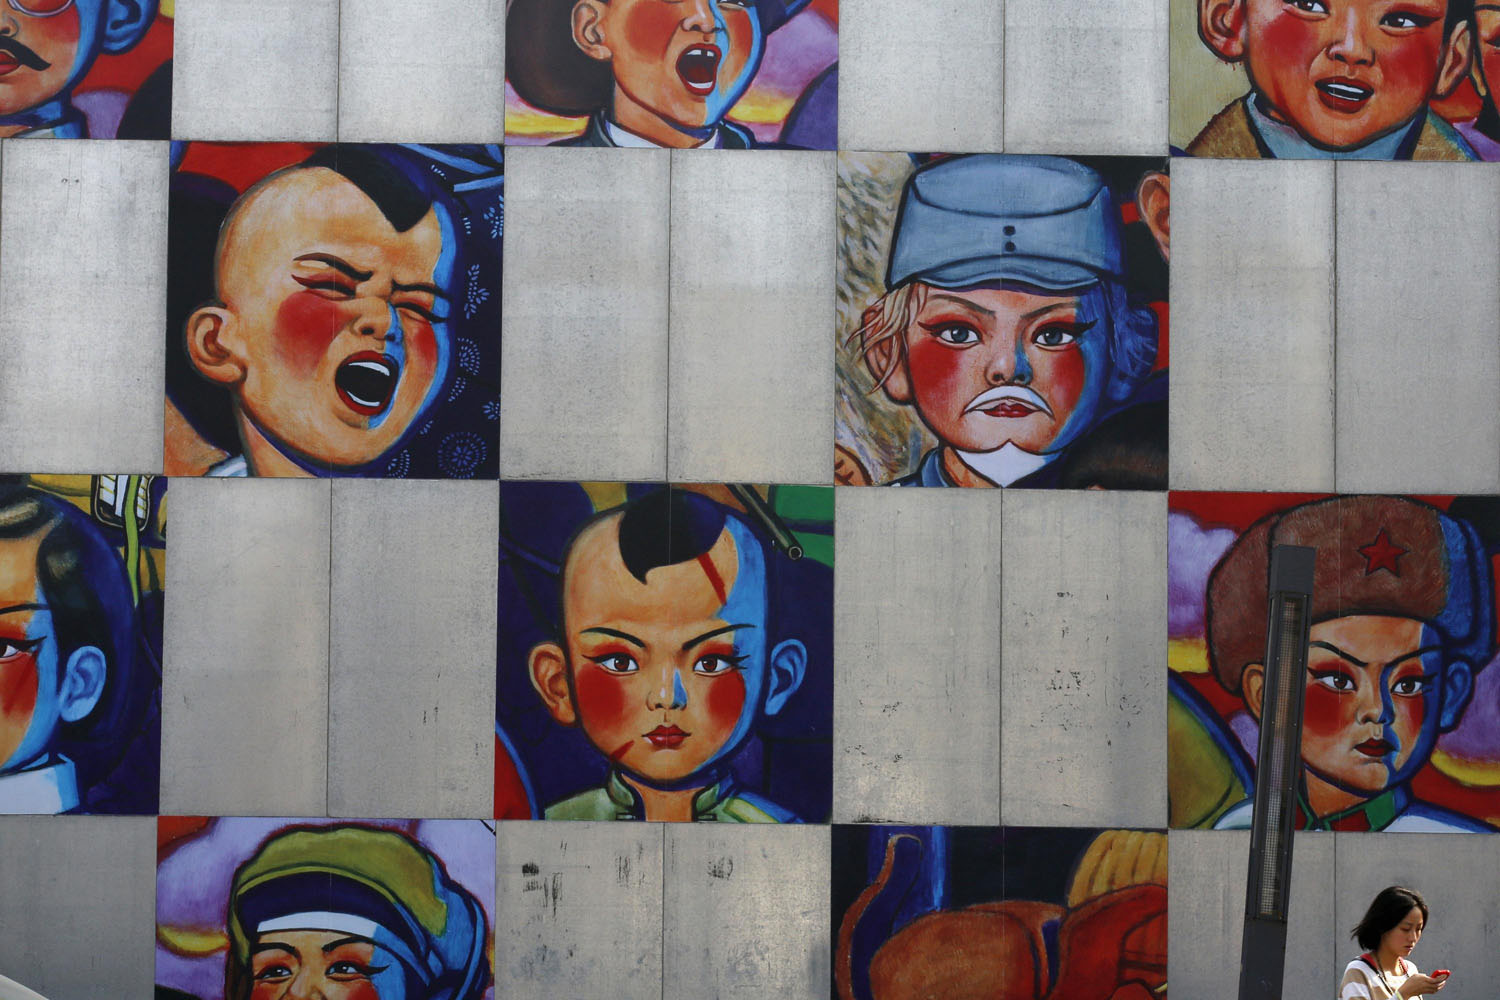 Oct. 8, 2013. A woman walks past a gallery's wall bearing the paintings by Song Changqing during the 2013 Beijing 798 Art Festival at the 798 Art Zone in Beijing.